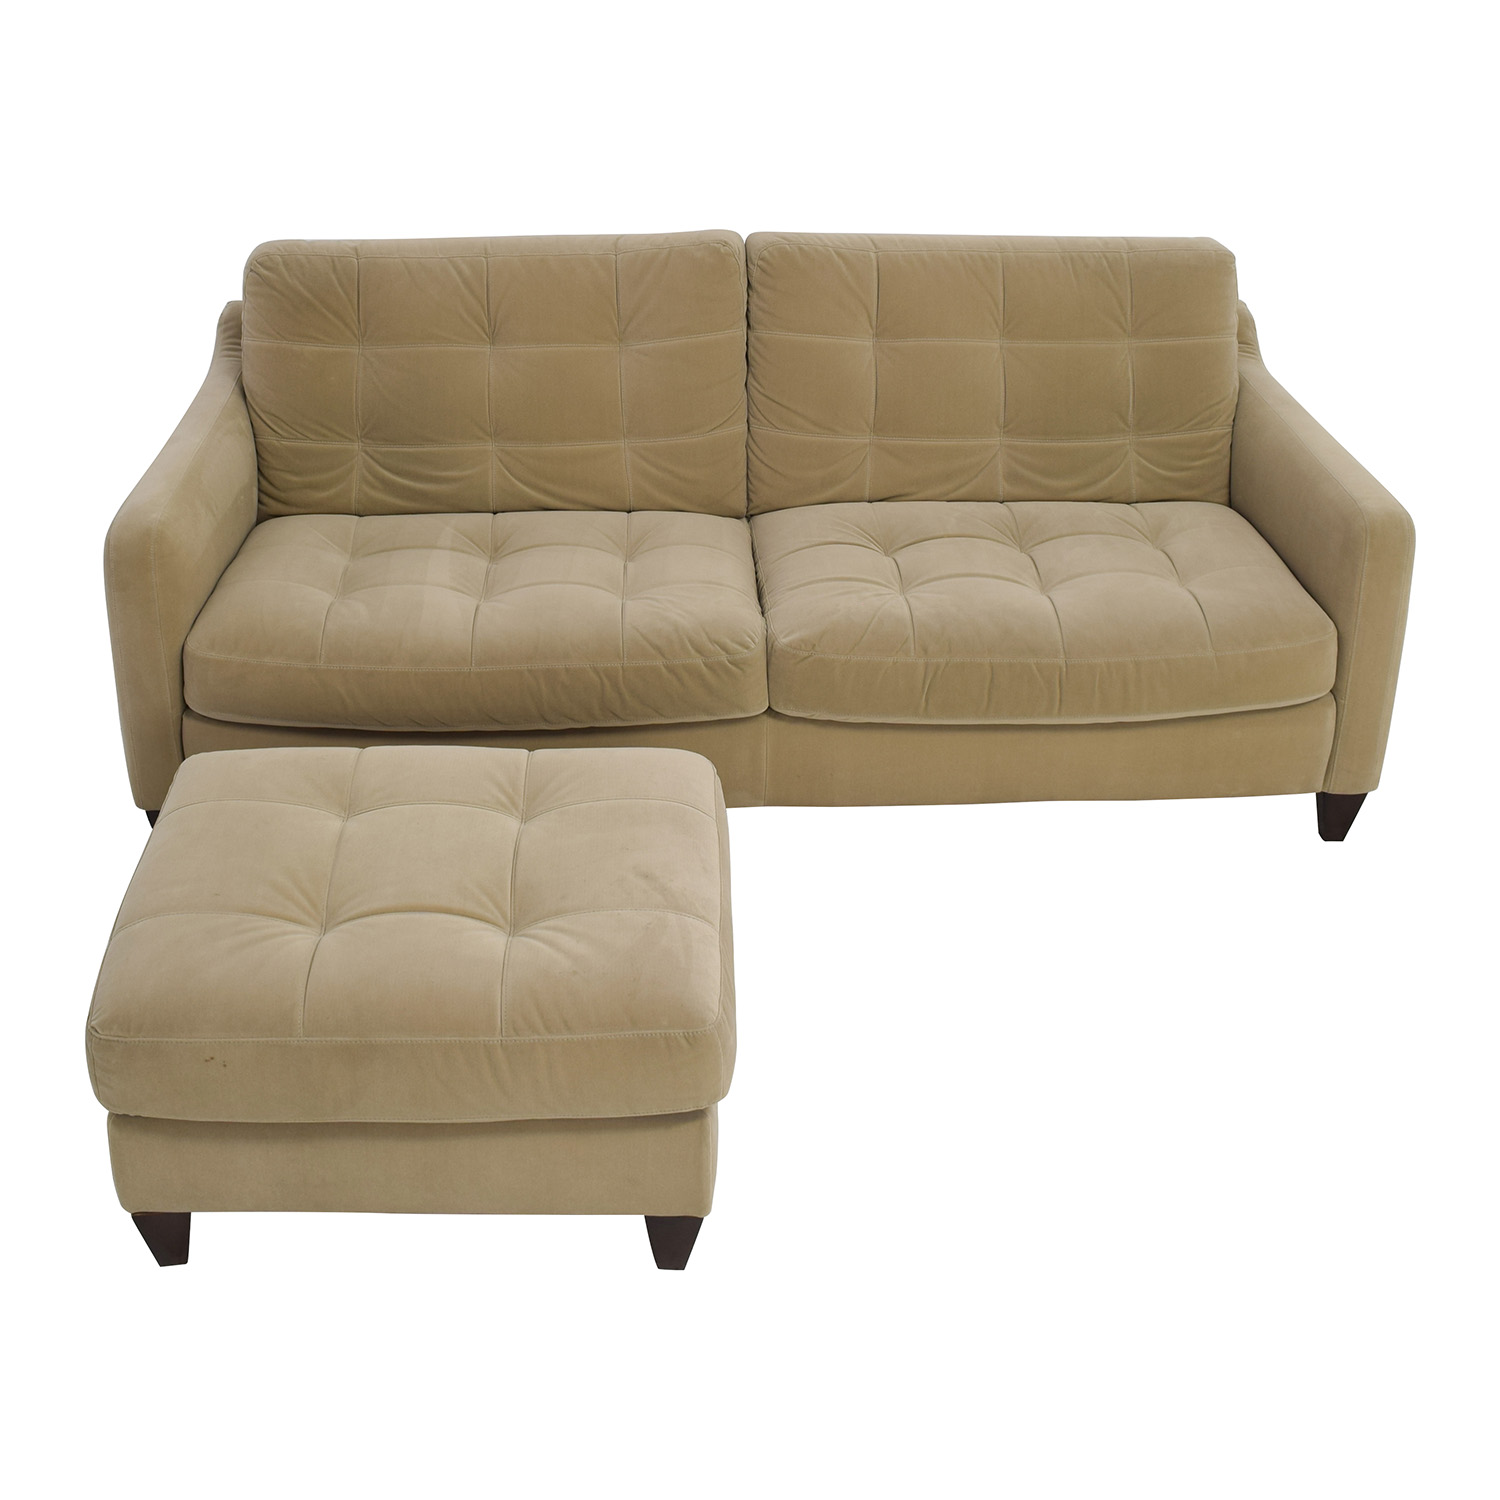 Natuzzi Natuzzi Beige Microfiber Tufted Couch and Ottoman coupon